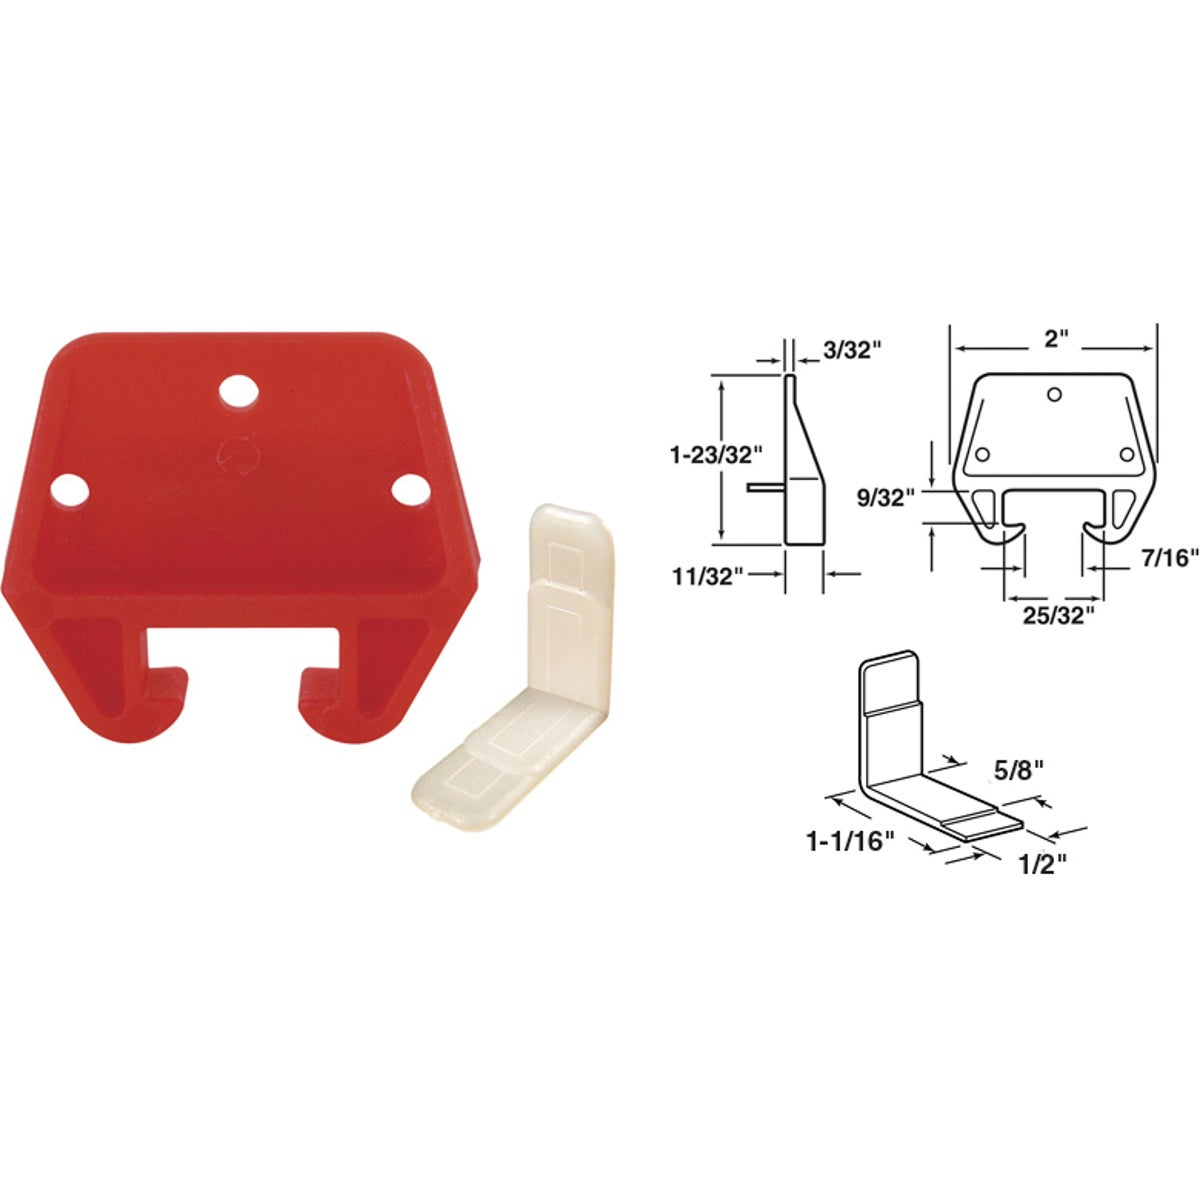 "13/16"" NYLON TRACK GUIDE - 22486 by Prime Line Products"